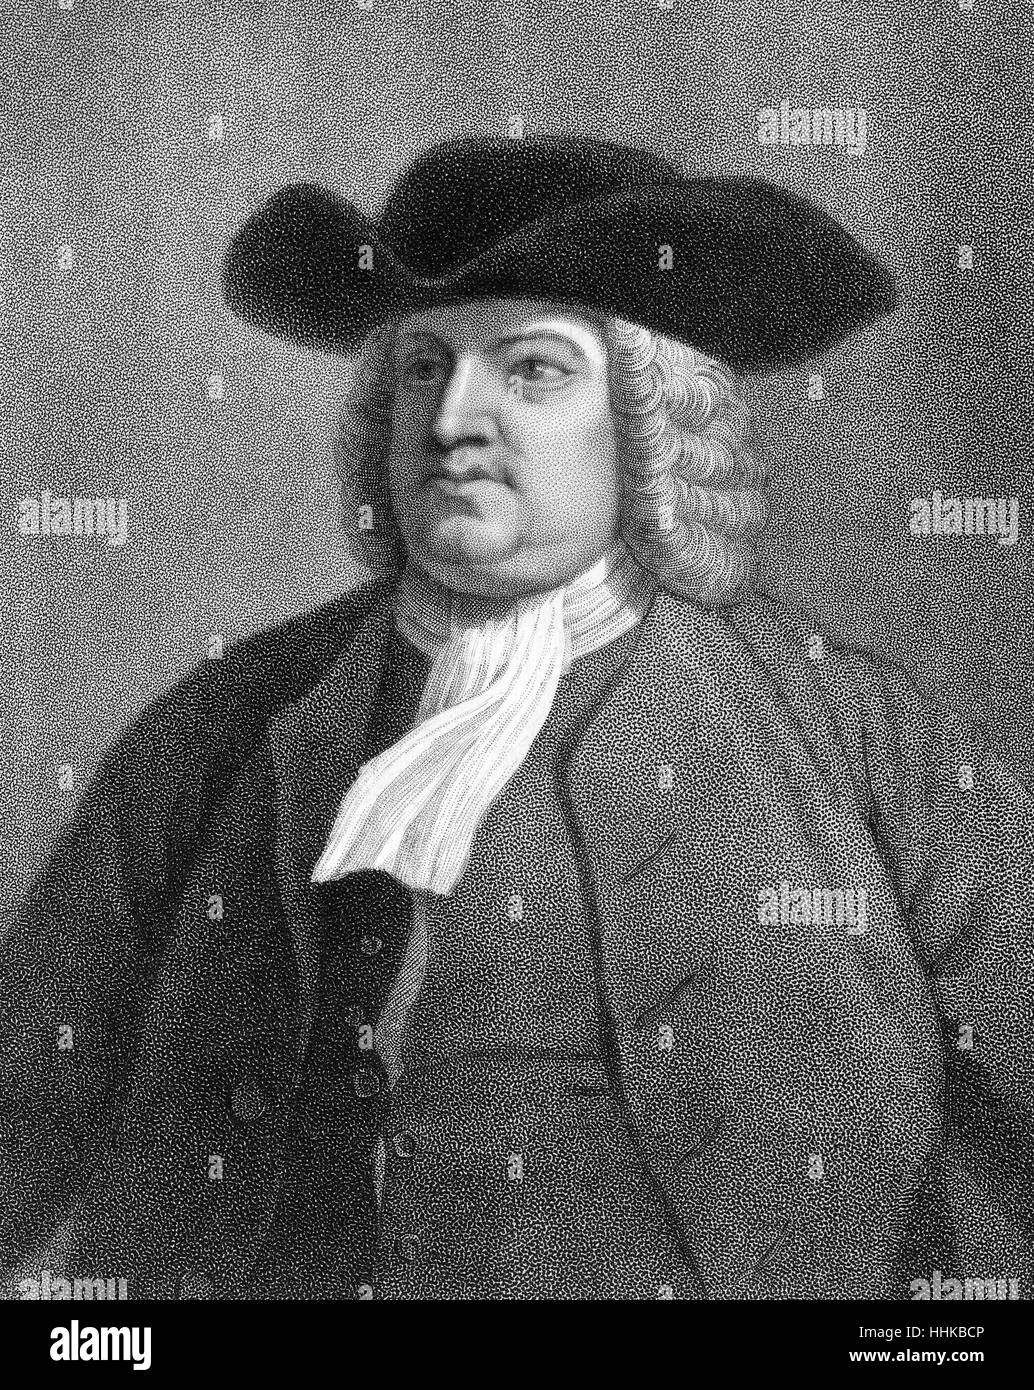 William Penn, 1644 - 1718, founder of the colony of Pennsylvania - Stock Image